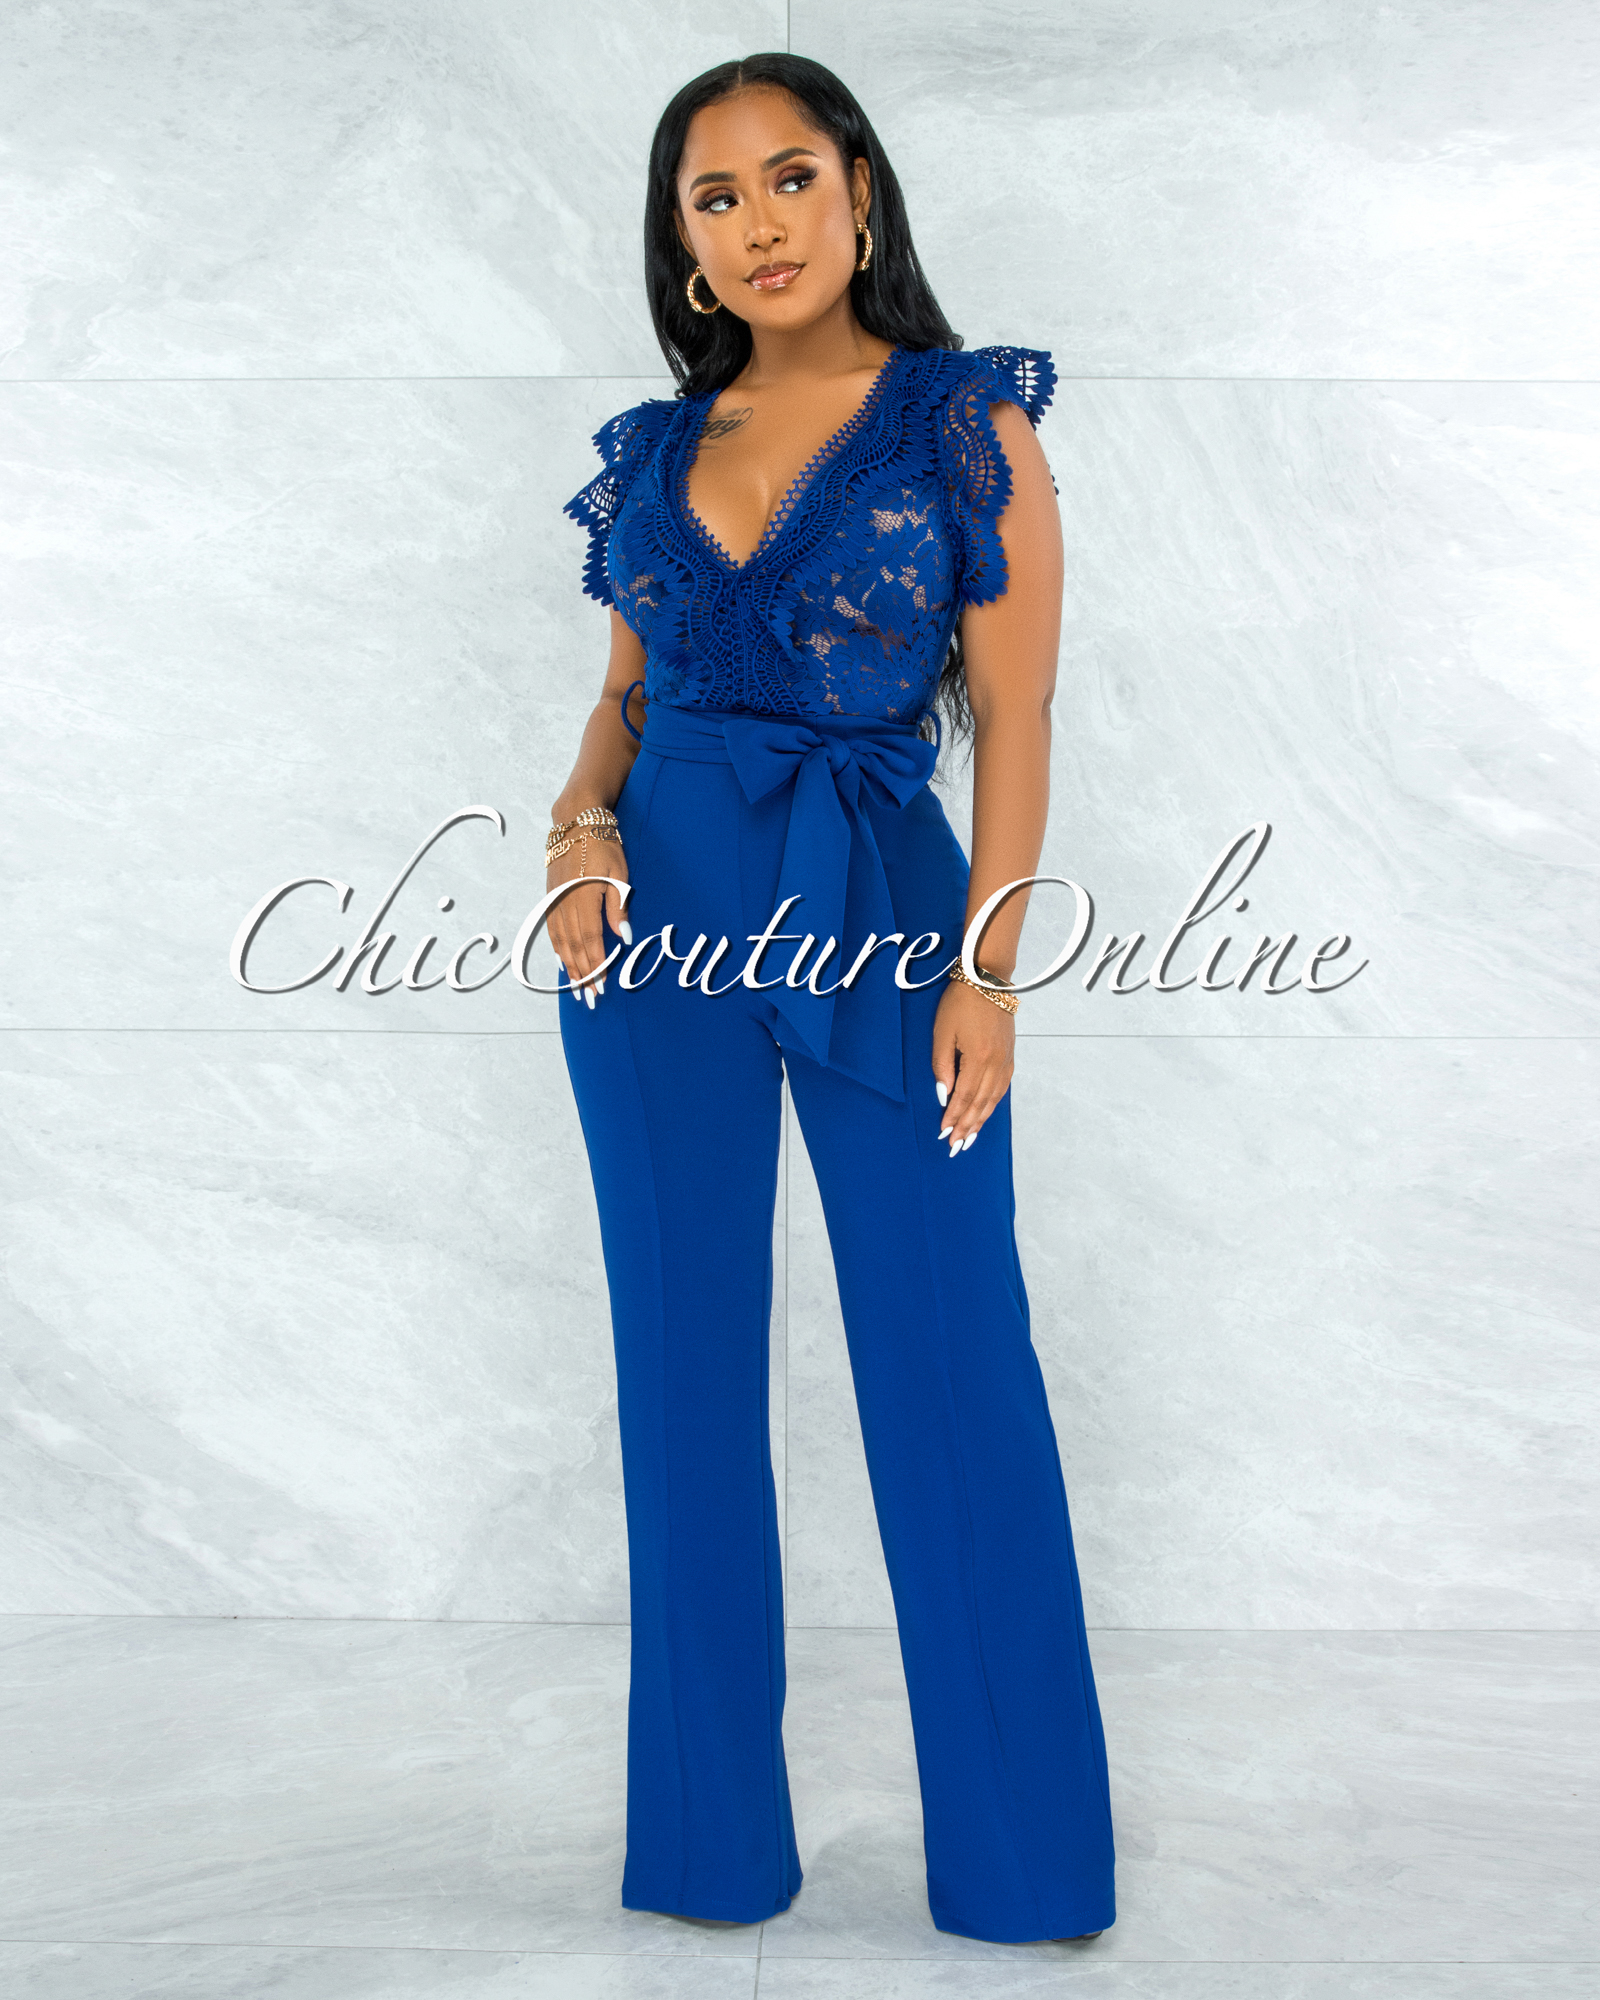 Pamba Royal Blue Crochet Lace See-Through Top Jumpsuit